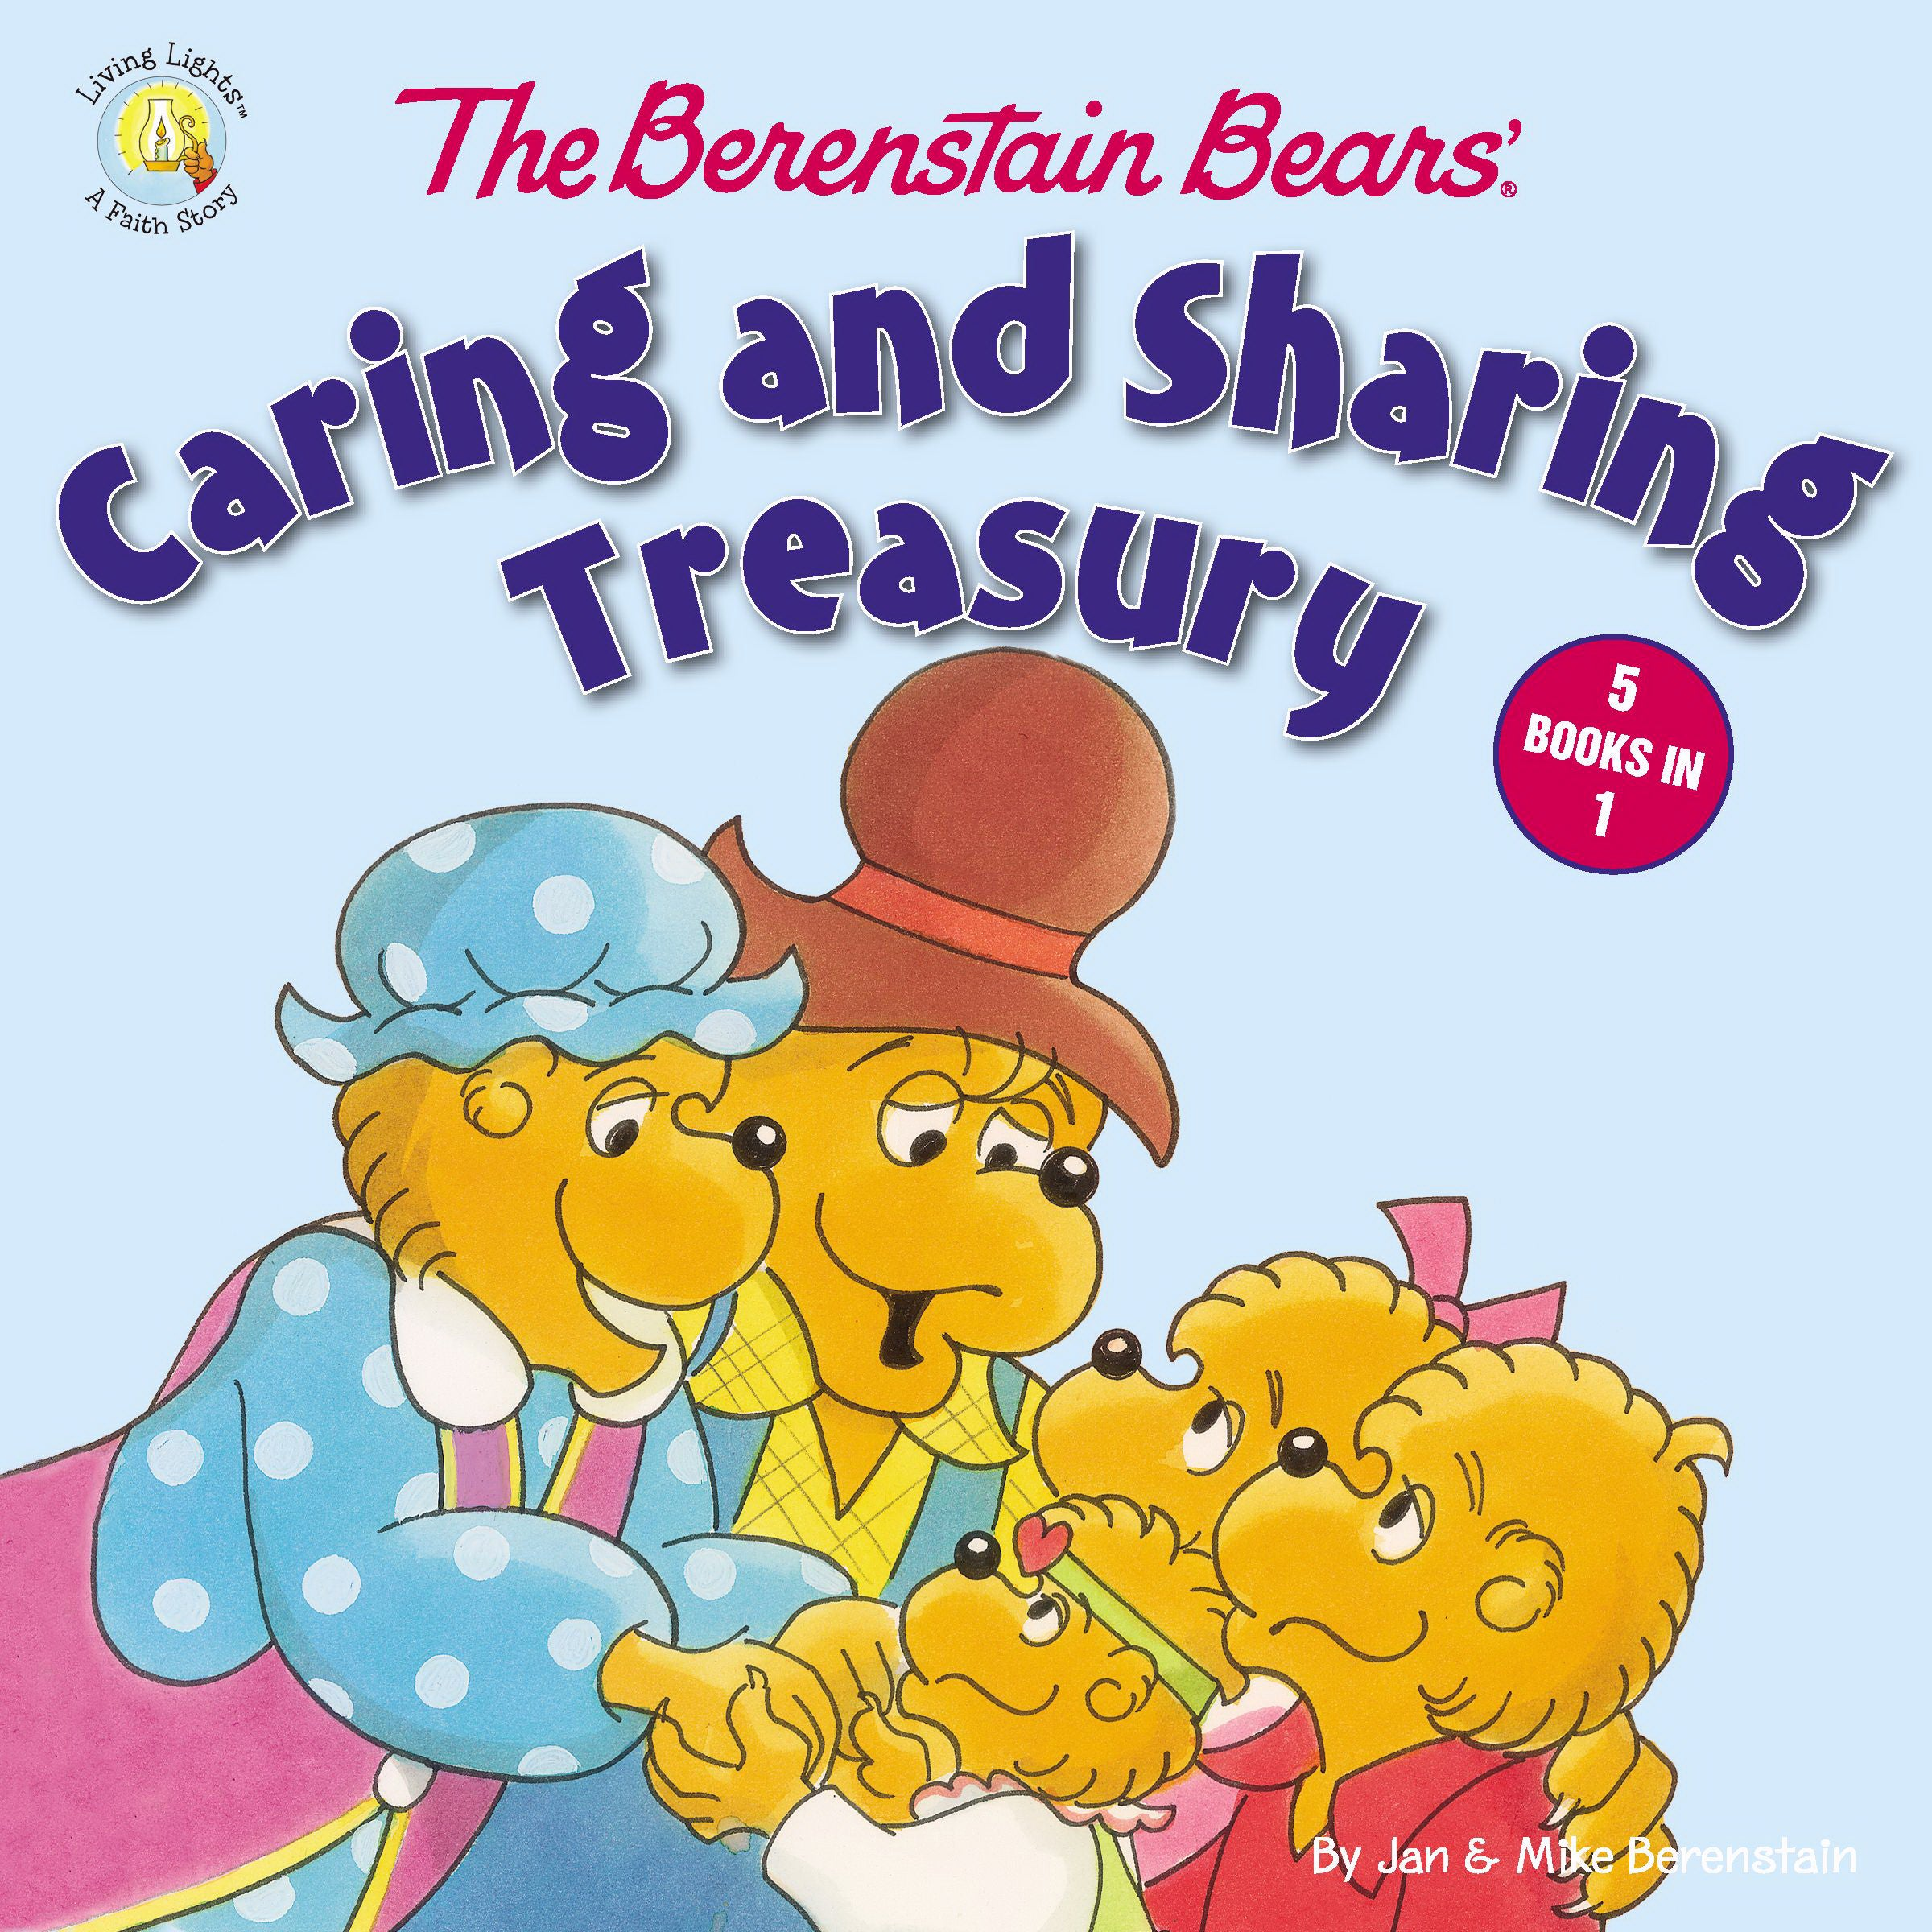 The Berenstain Bears' Caring And Sharing Treasury (Living Lights)